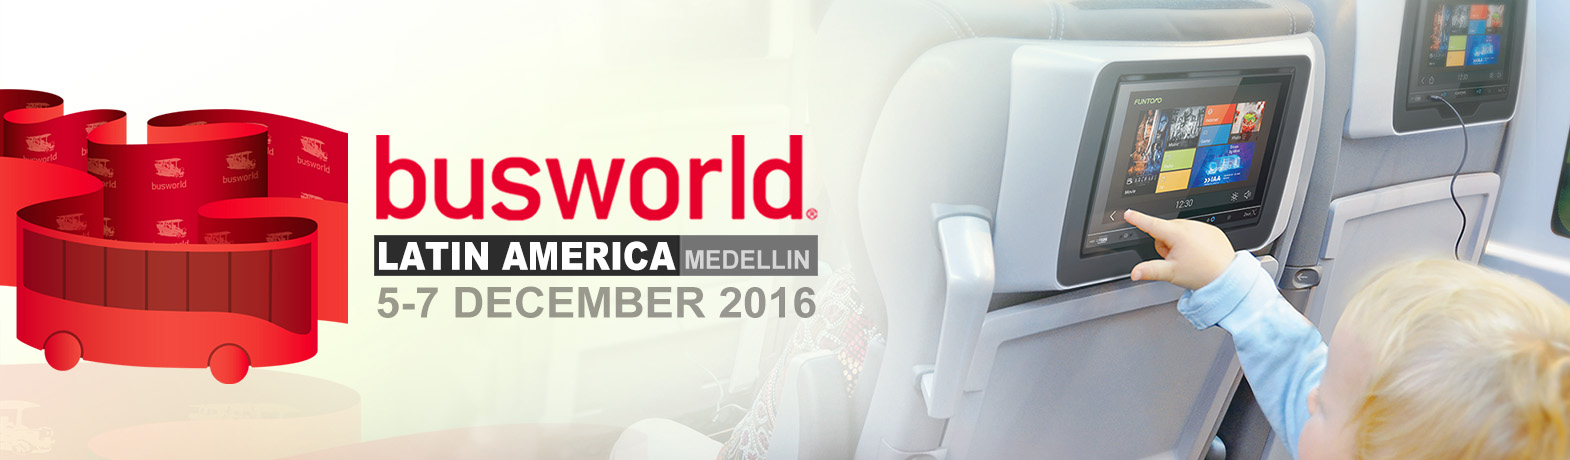 Welcome to visit MSI/FUNTORO (booth#AM110A) at Busworld Latin America 2016